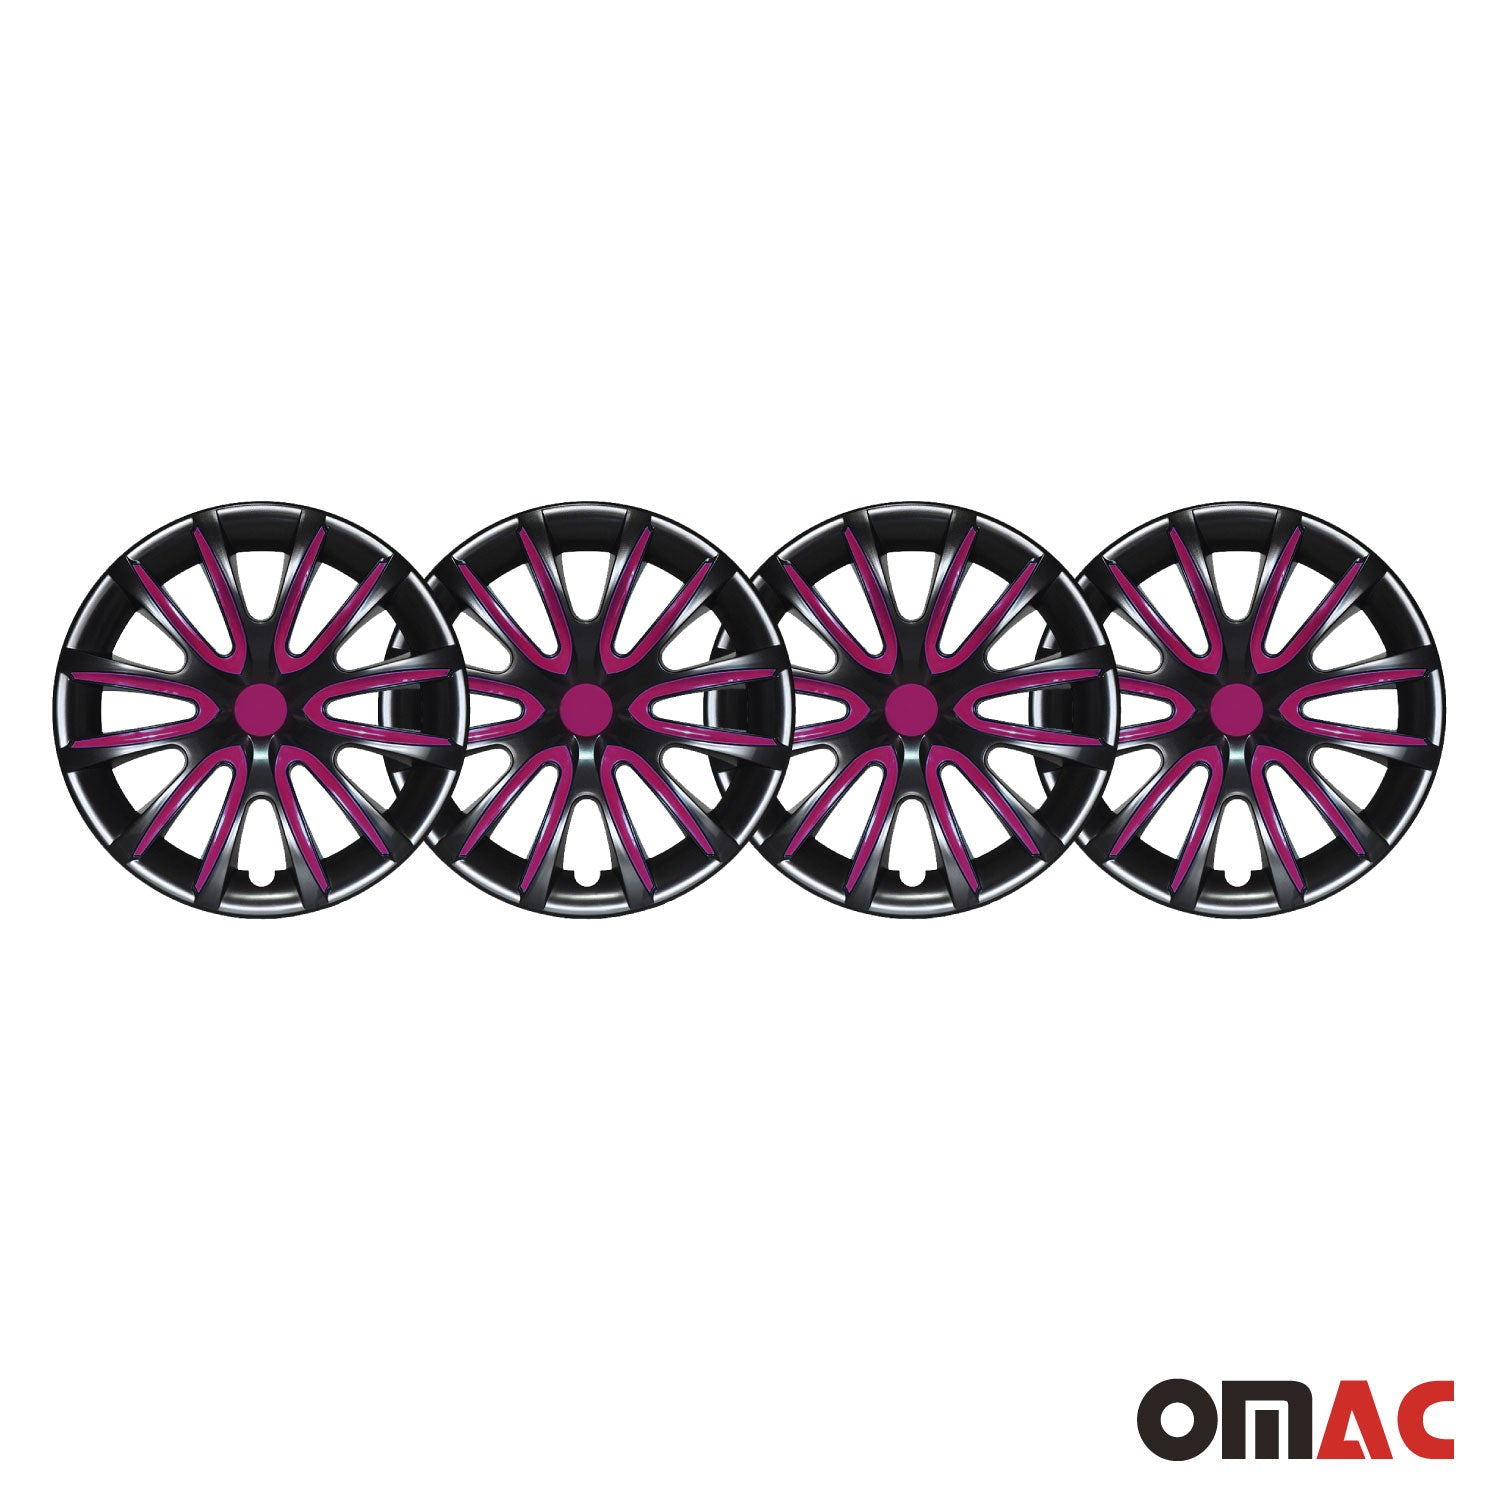 "16"" Inch Hub Cap Wheel Rim Cover Black with Violet for Volkswagen Jetta 4pcs Set"